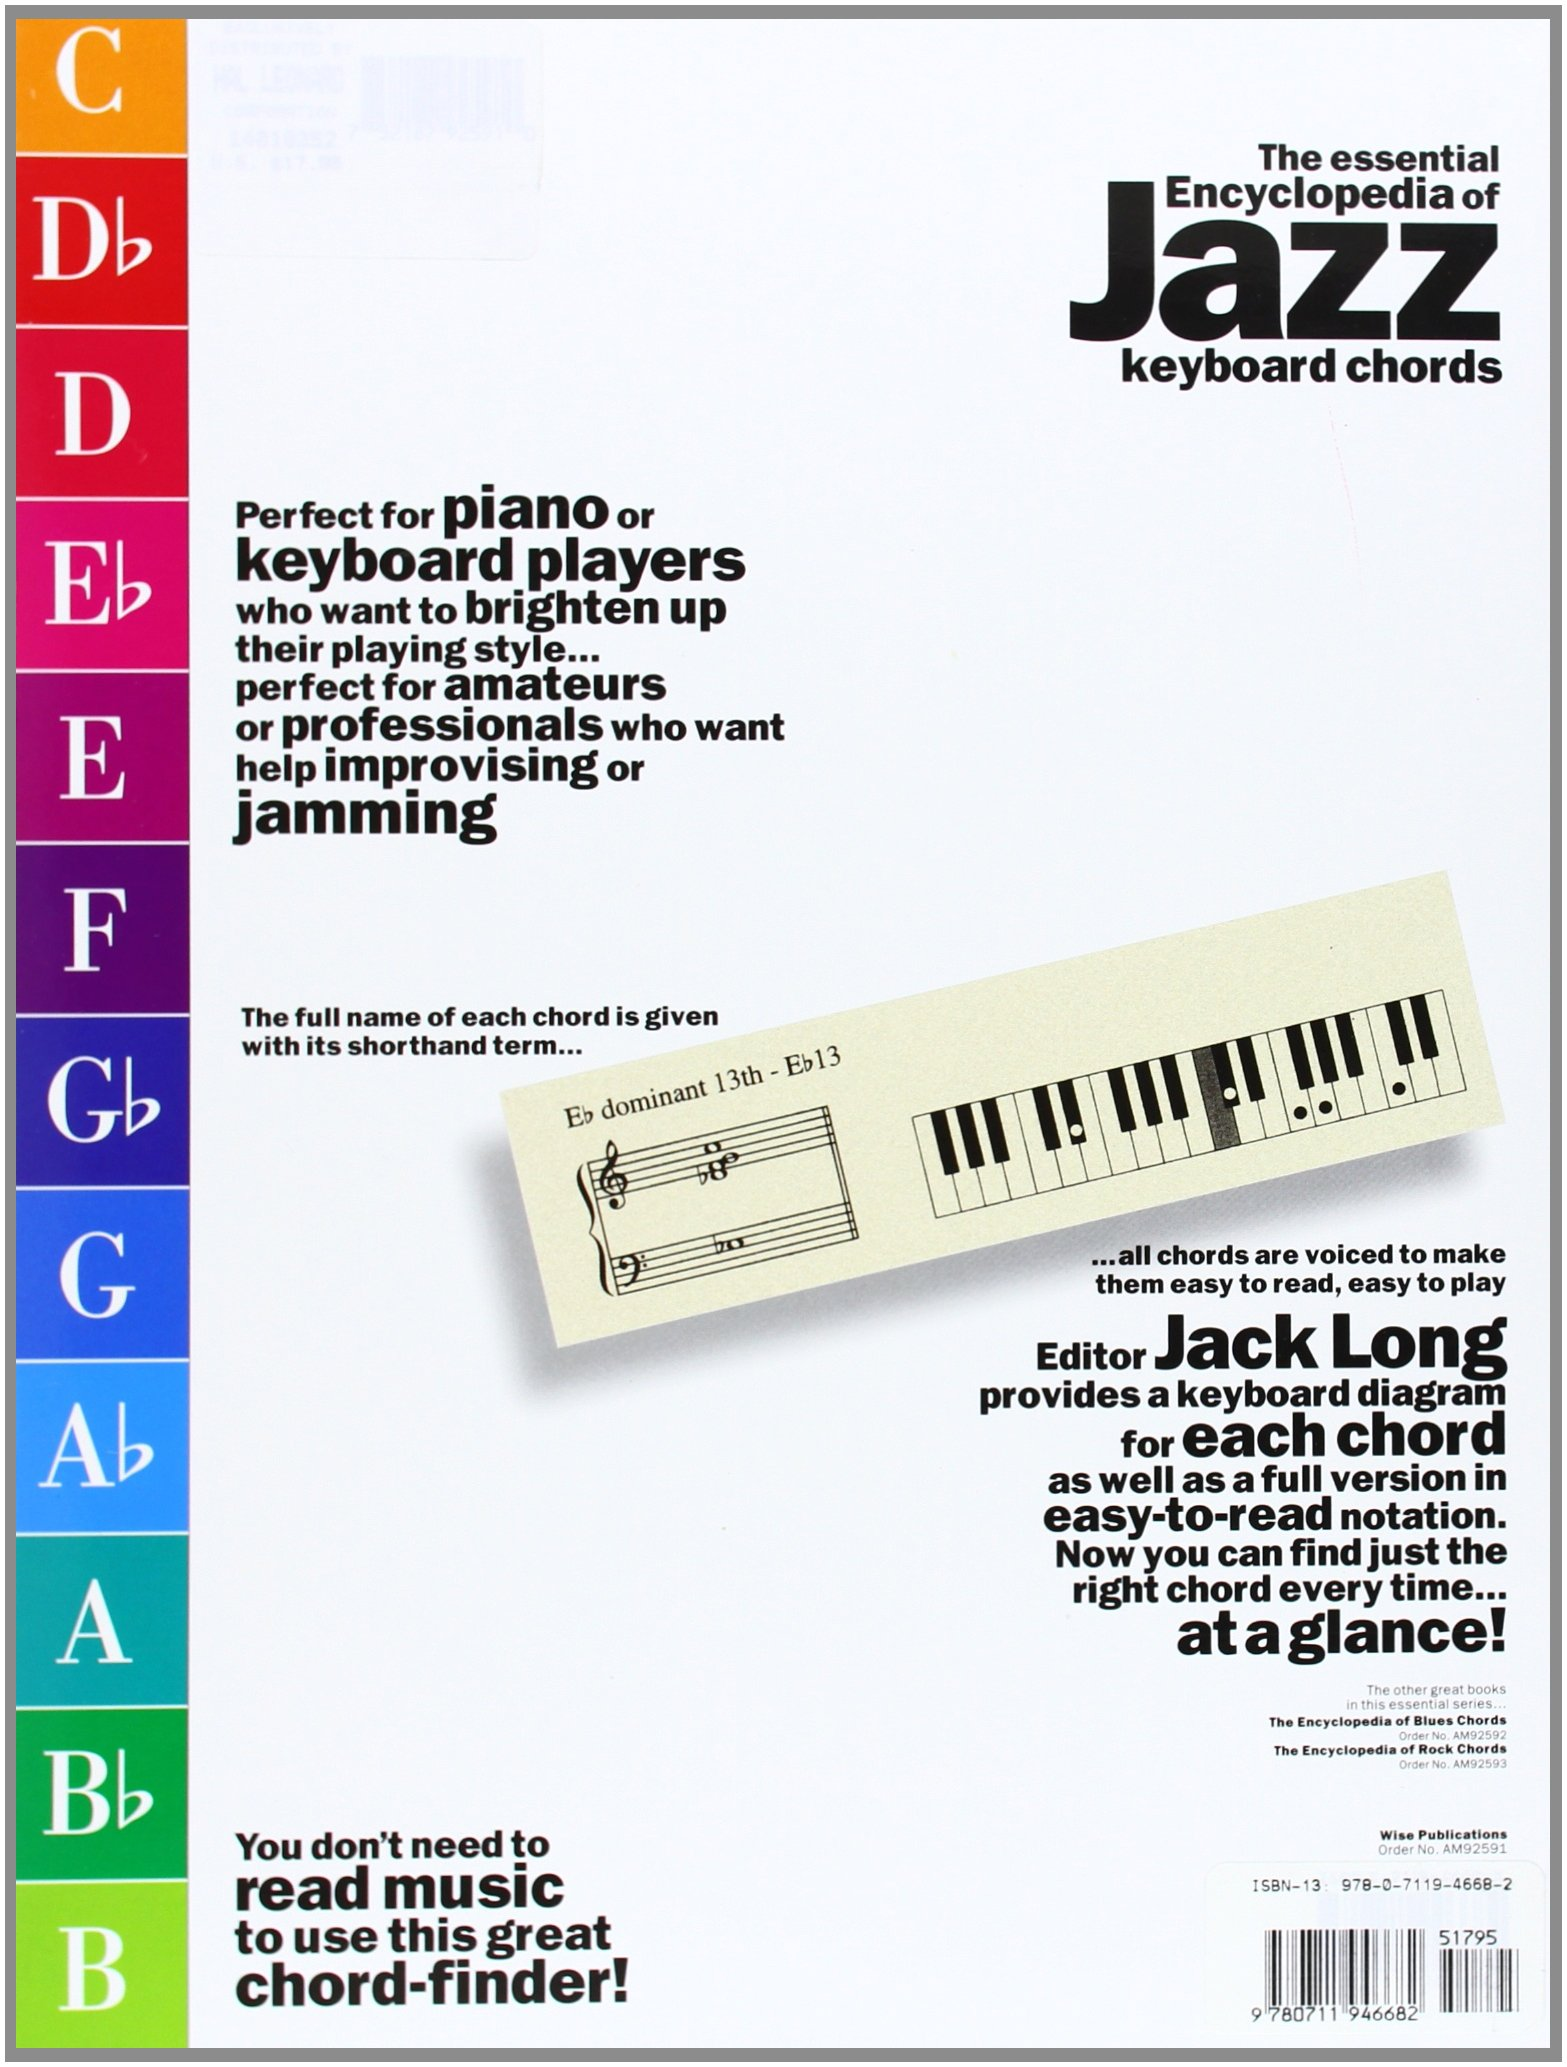 Encyclopedia of jazz chords jack long 9780711946682 amazon encyclopedia of jazz chords jack long 9780711946682 amazon books hexwebz Choice Image